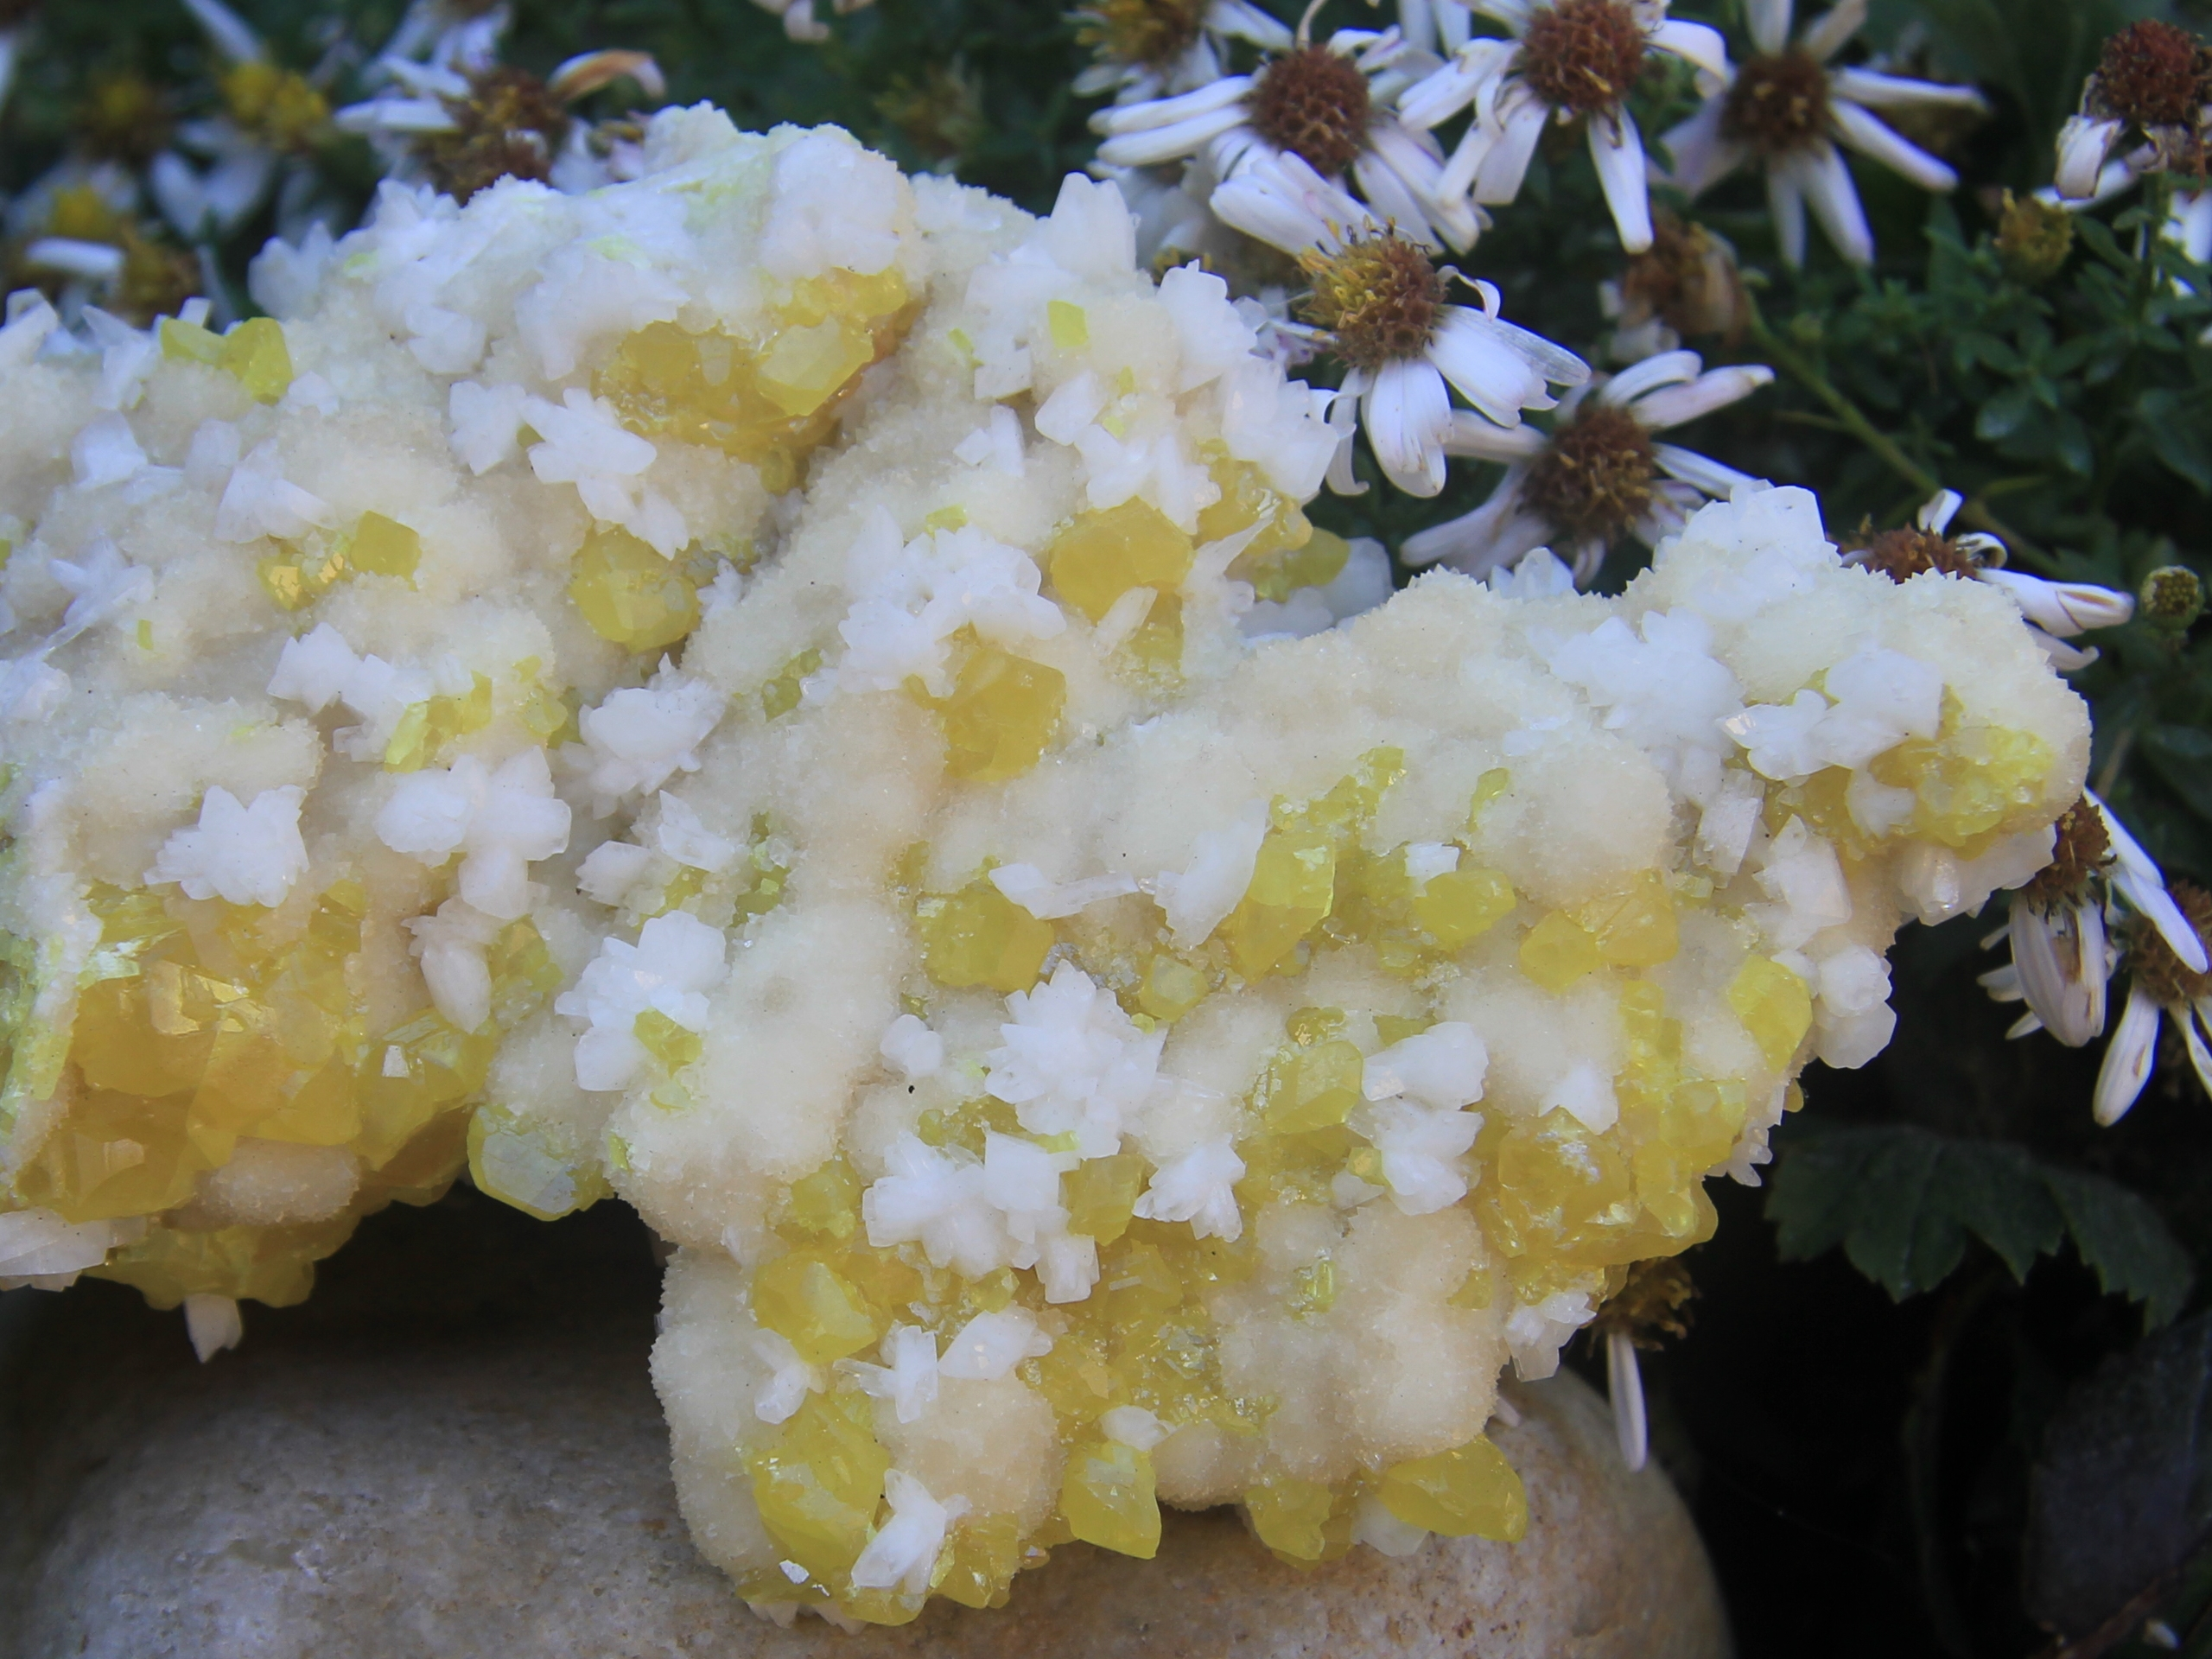 Sulphur crystals and calcite